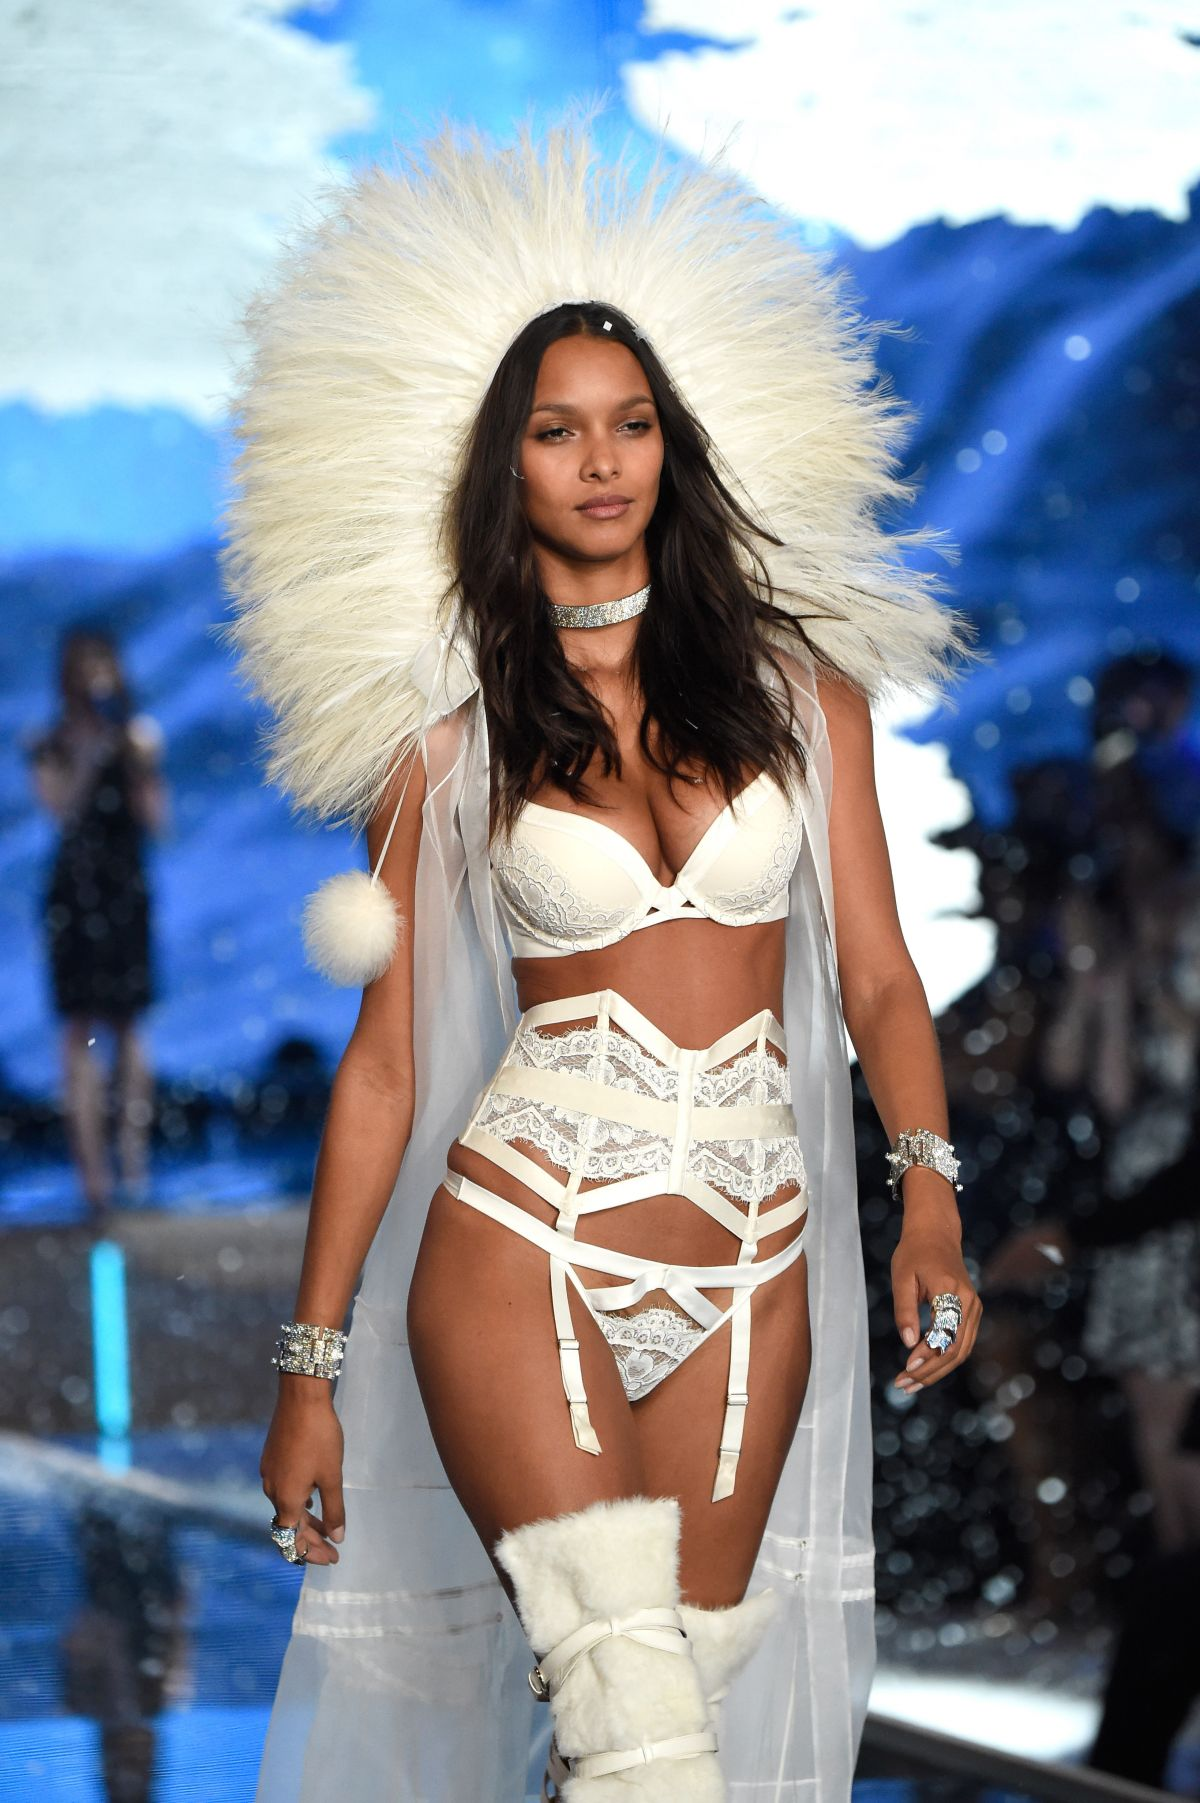 Young Lais Ribeiro nudes (65 foto and video), Topless, Bikini, Instagram, lingerie 2017